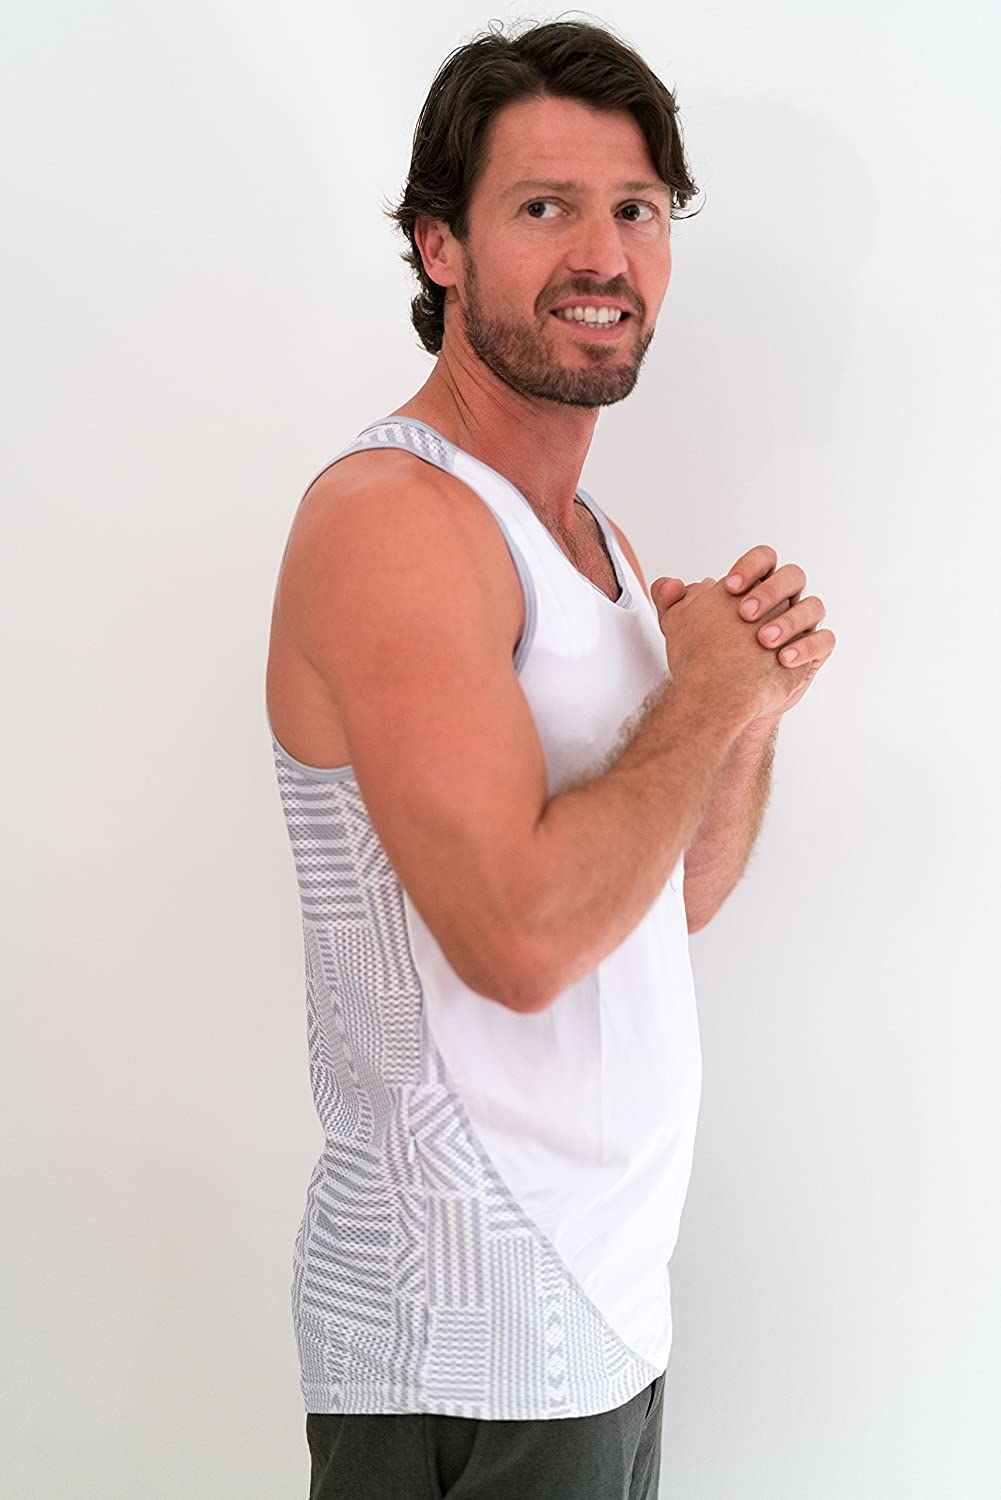 Hidden dasFlow Mens Tank Top with 5 Pockets Avail in 5 Colors//Designs Active Wear Athleisure,